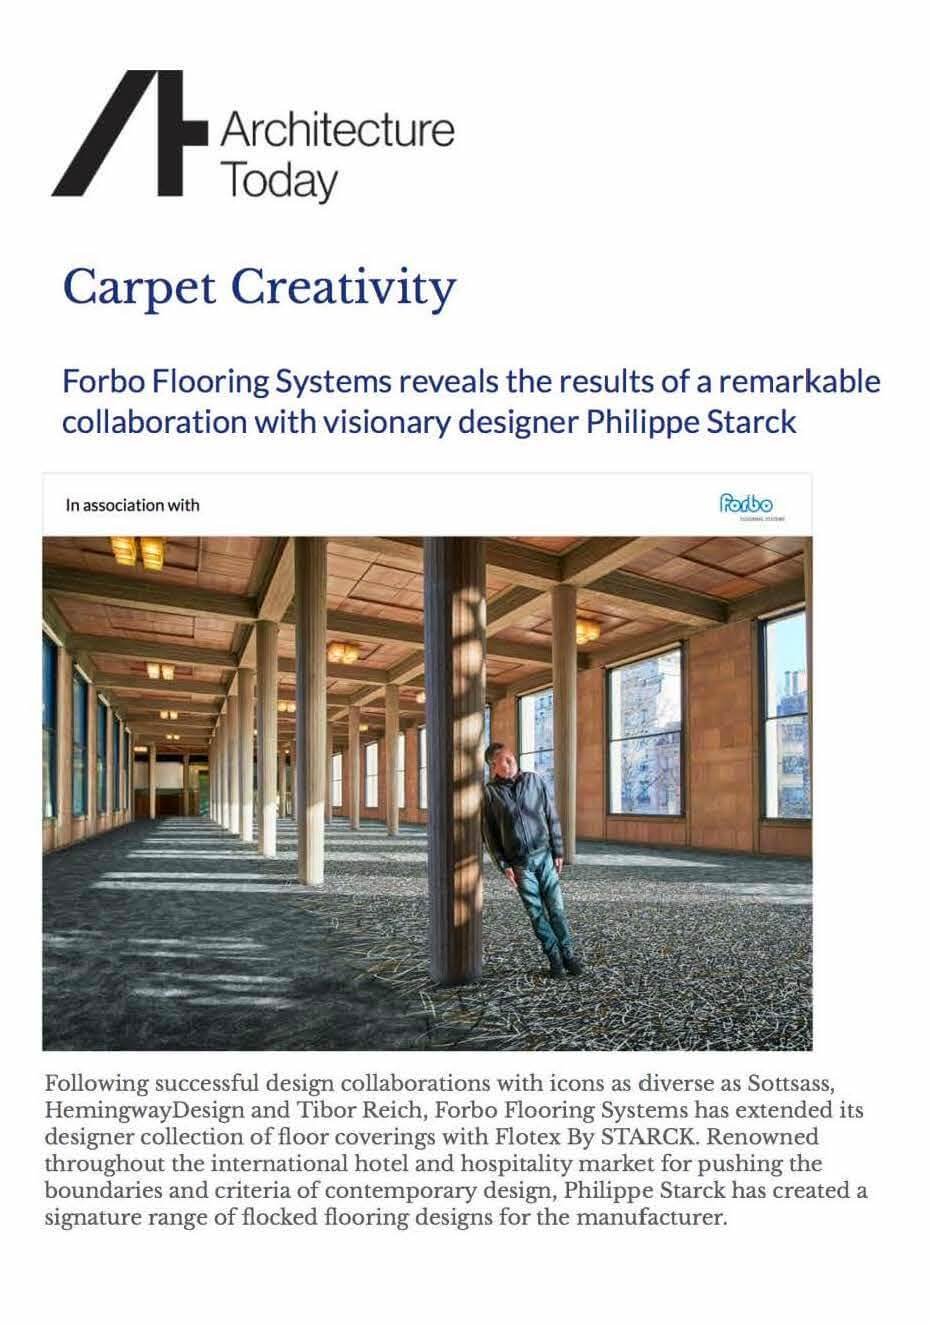 Forbo Flooring Systems reveals the results of a remarkable collaboration with visionary designer Philippe Starck